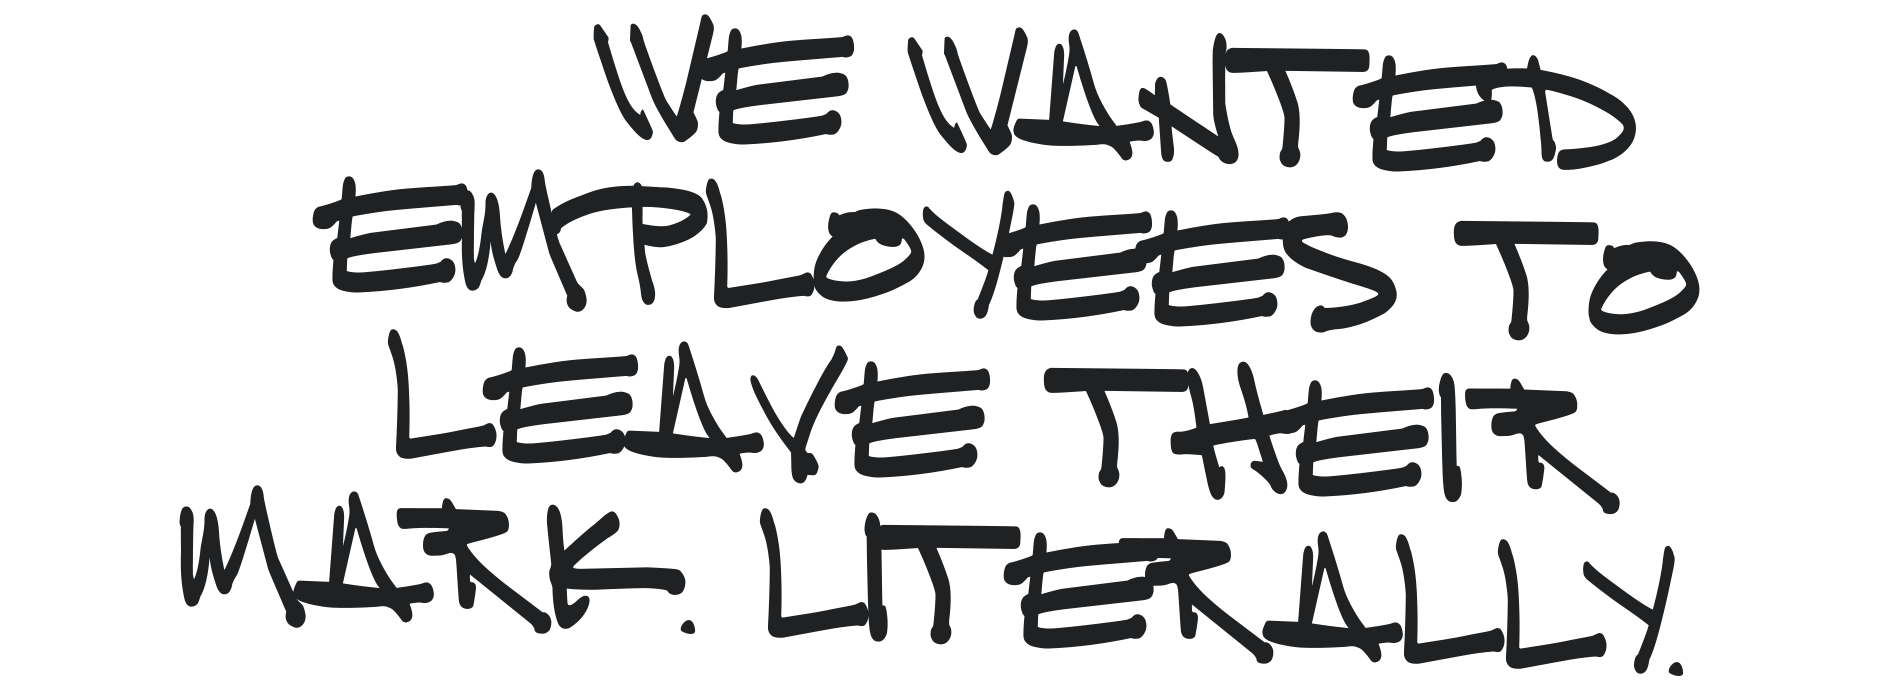 We wanted employees to leave their mark. Literally.